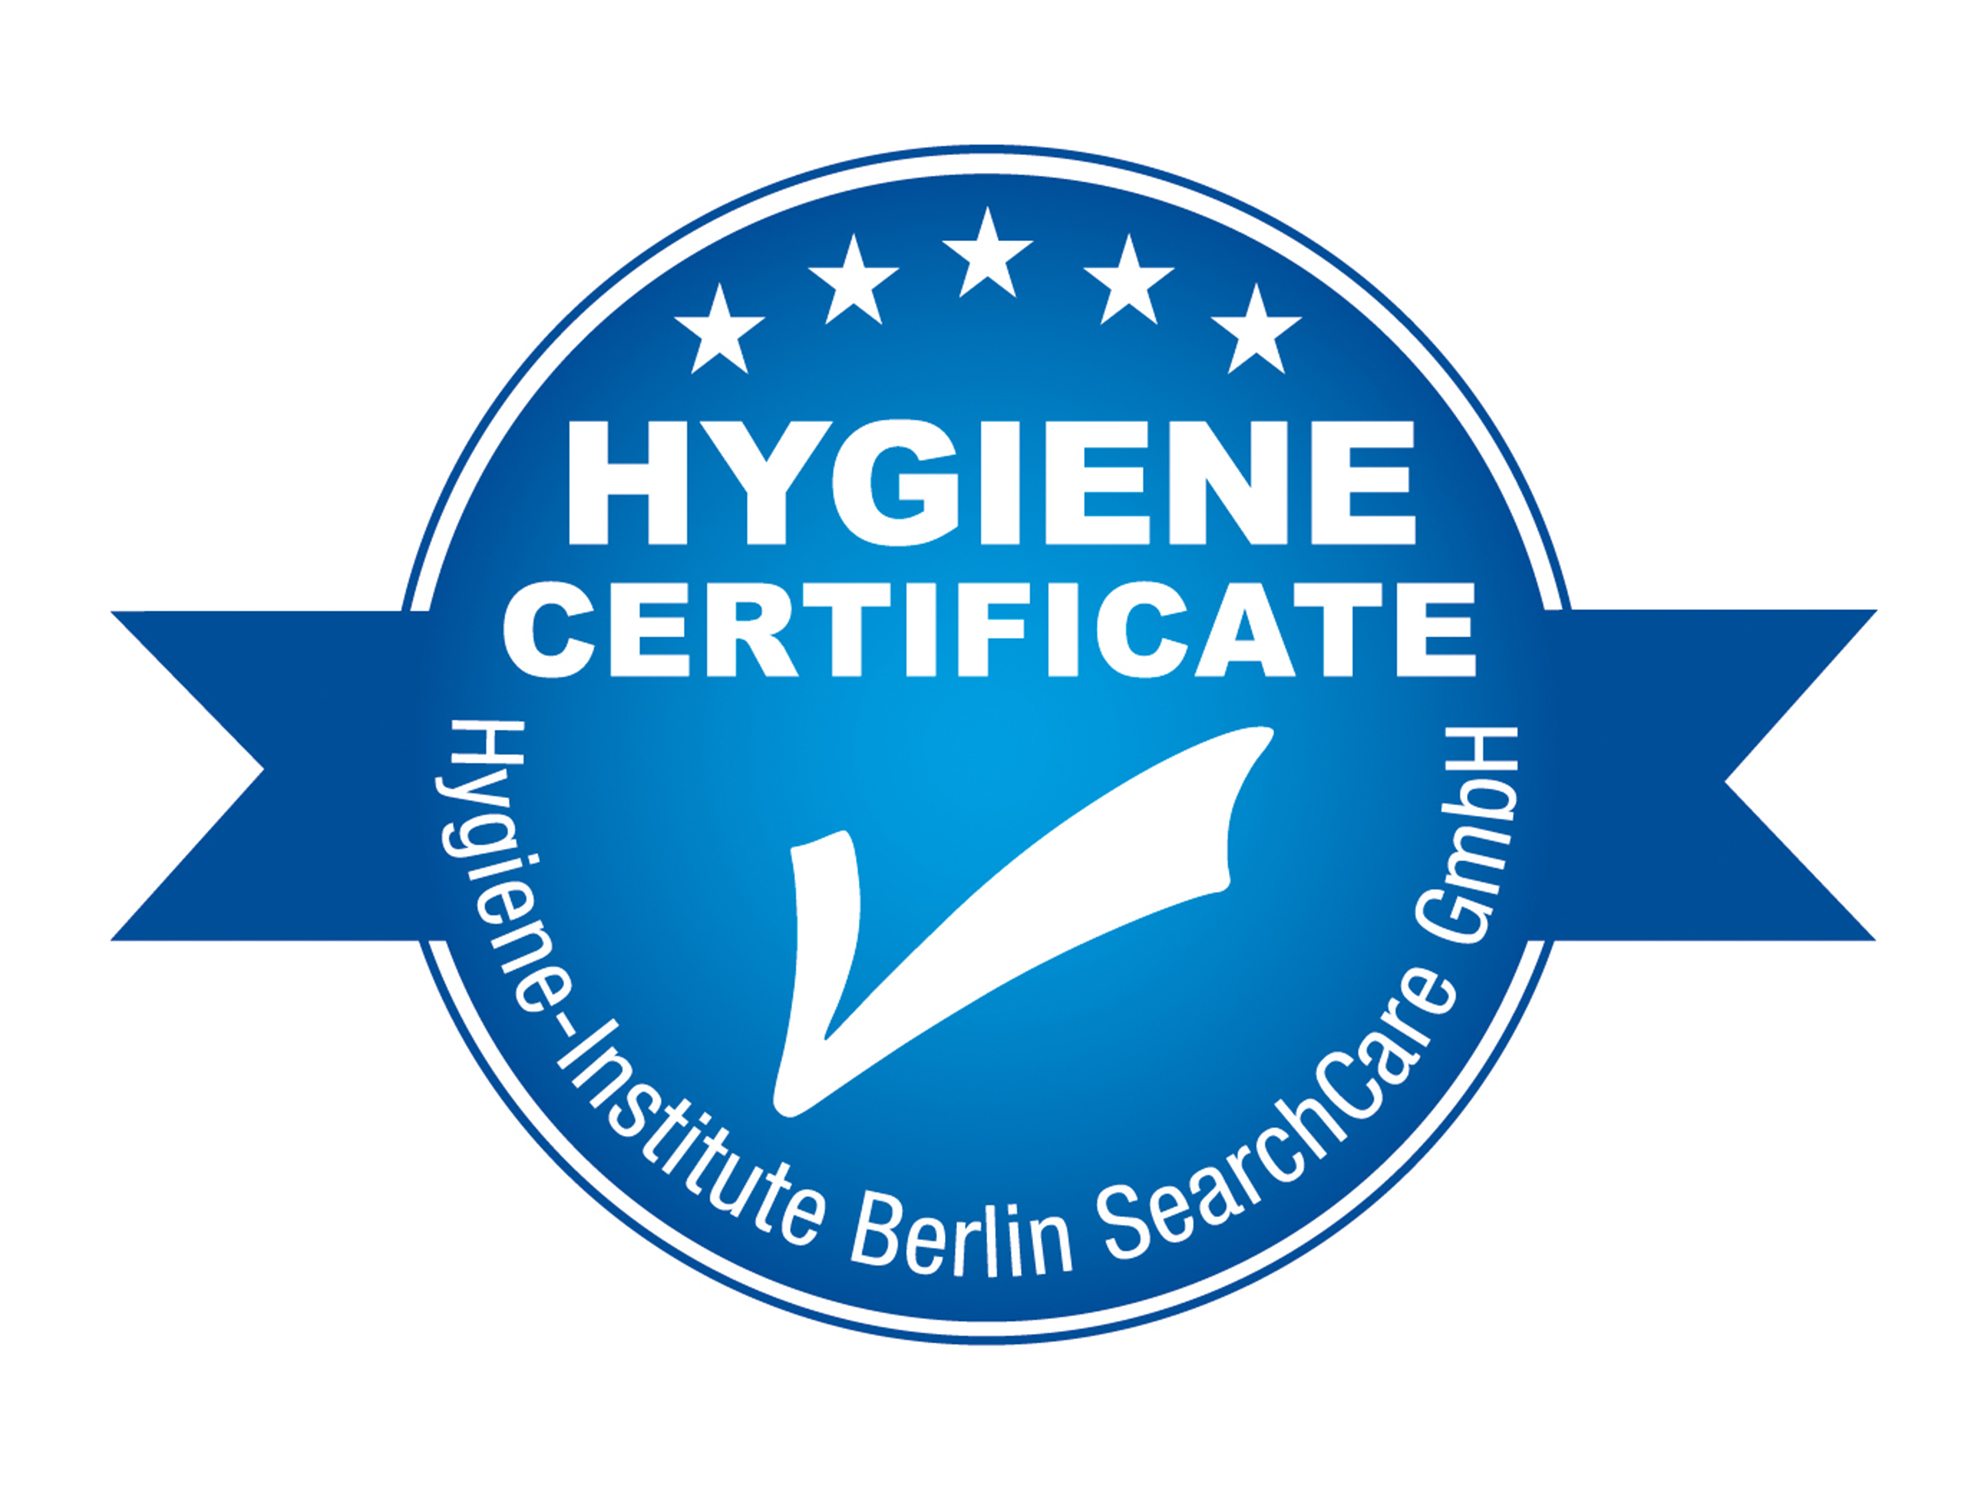 Hygiene Zertifikat des Hygiene-Instituts Berlin SearchCare